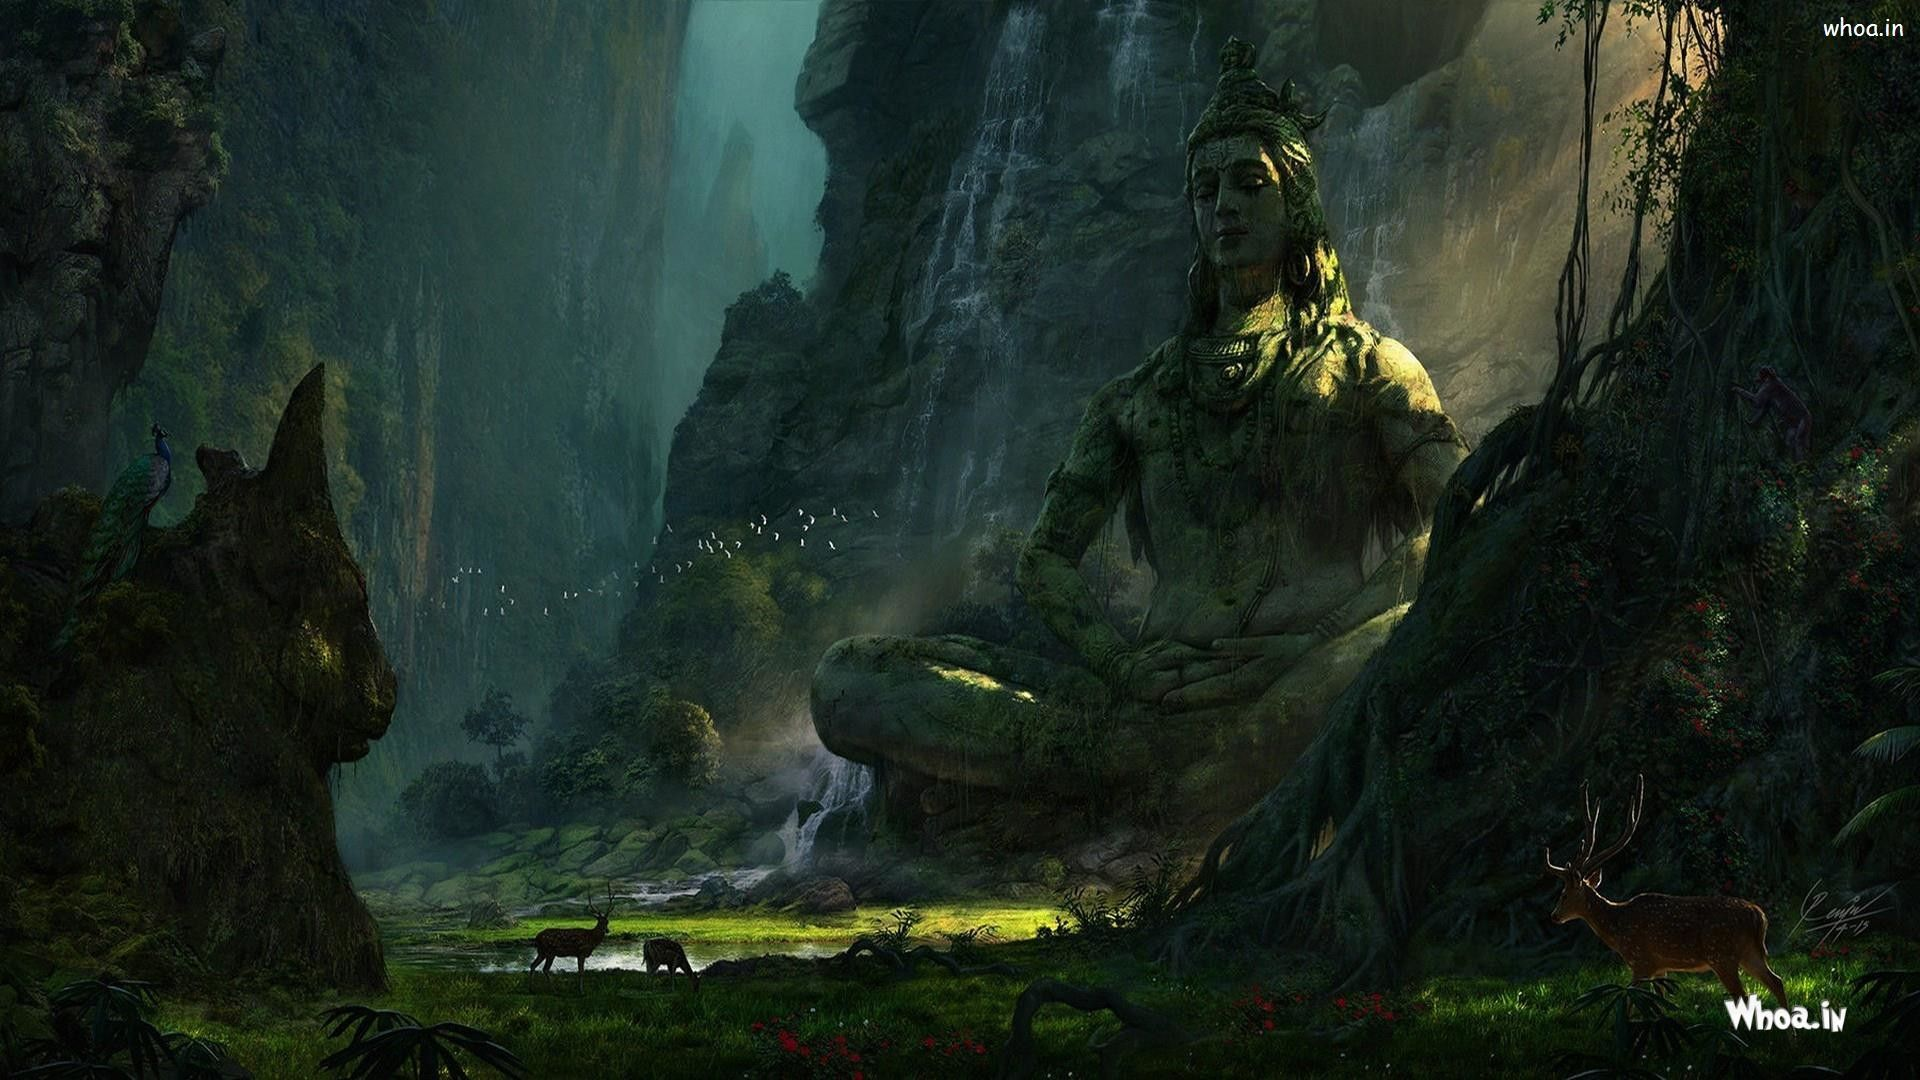 Pin By Andyroid 2 0 On Indian Gods Shiva Wallpaper Lord Shiva Fantasy Landscape